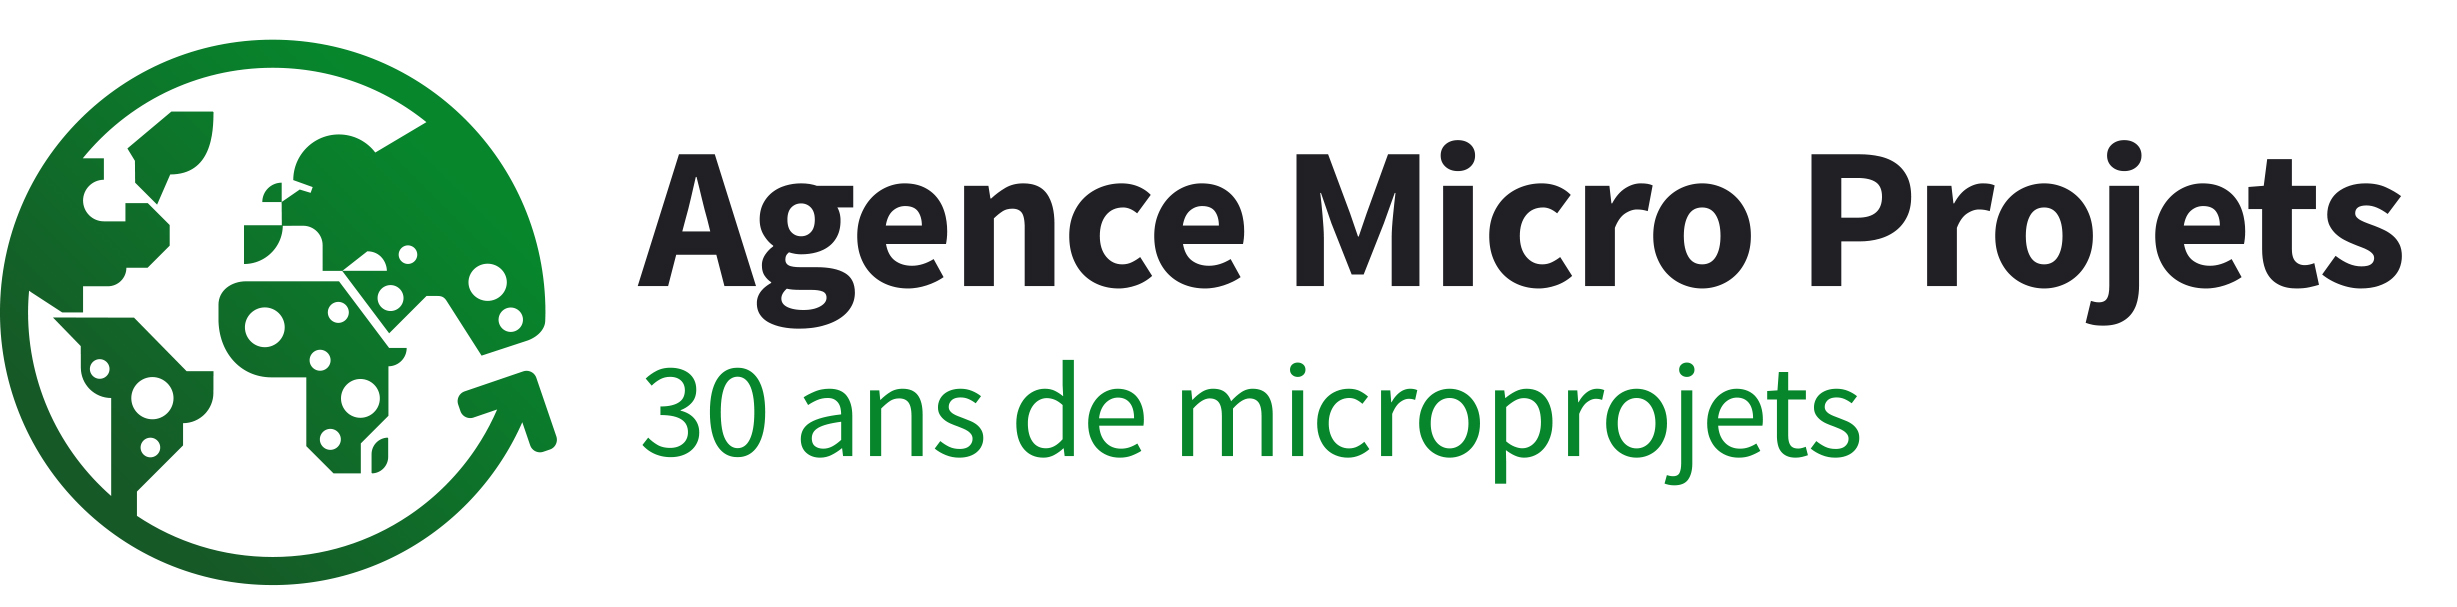 agencemicroprojets